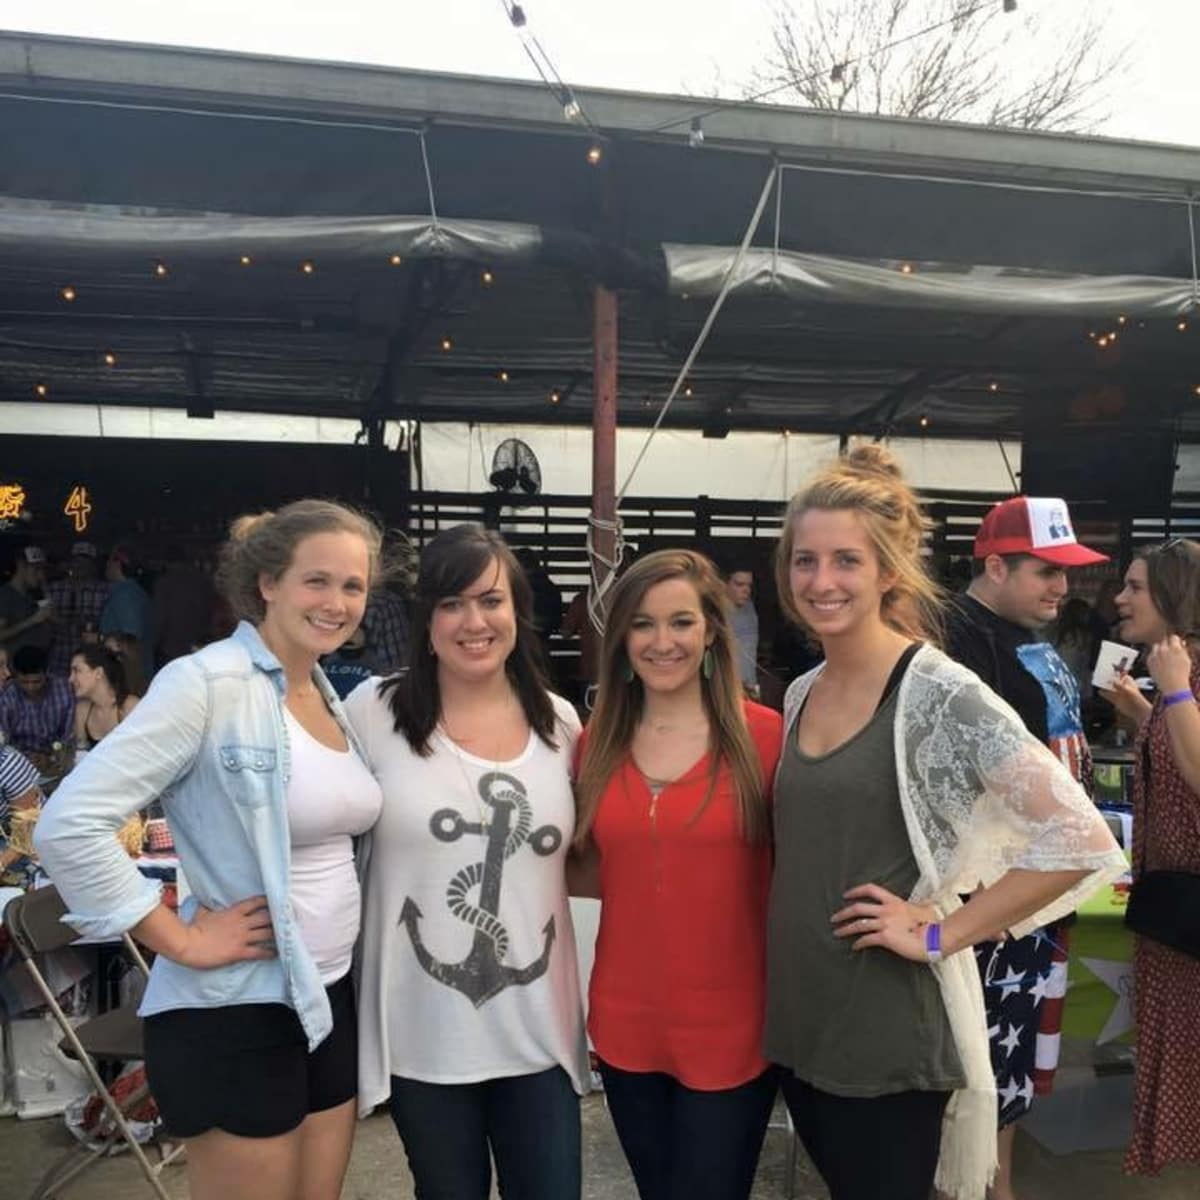 Casa de Esperanza chili cook-off, March 2016, Heather Darr, Sarah Owens, Ally Hatz, Becca Elise